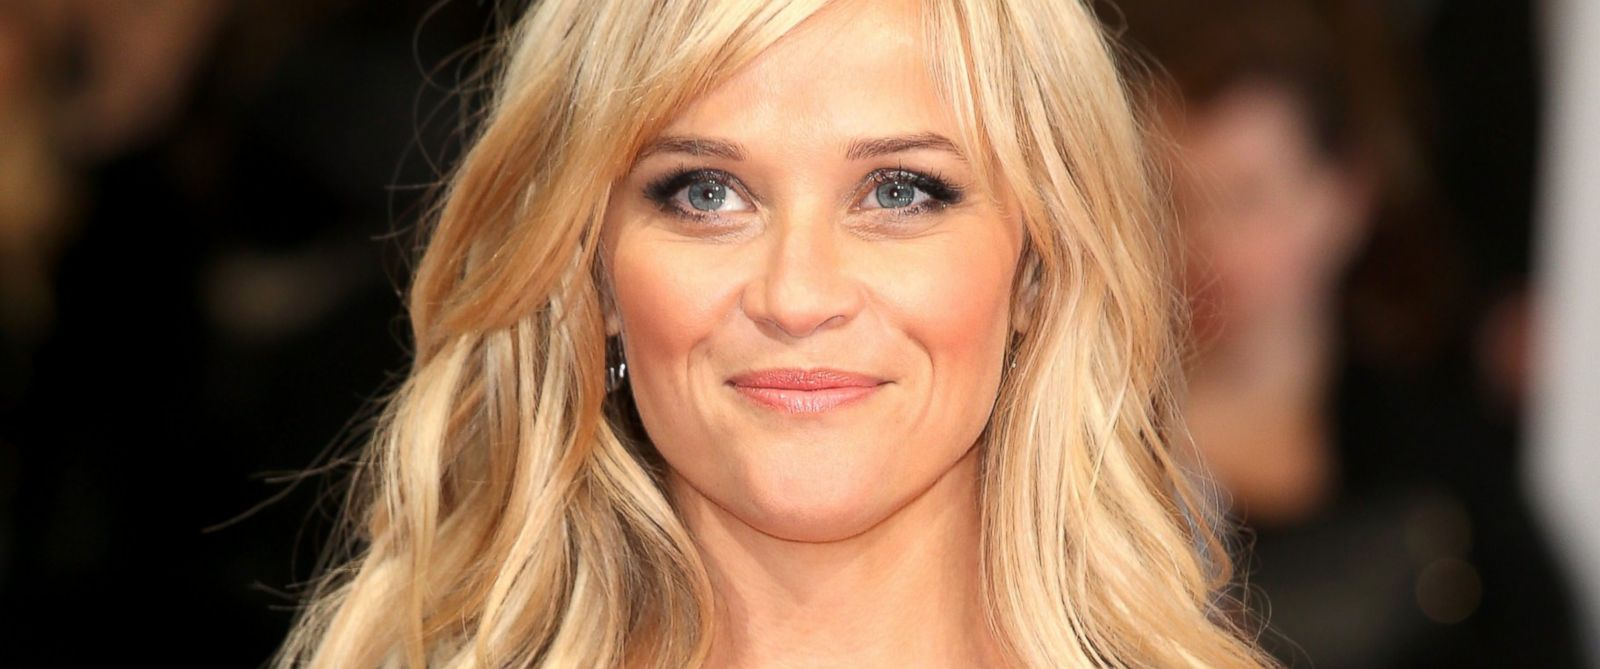 Reese Witherspoon Eyebrows